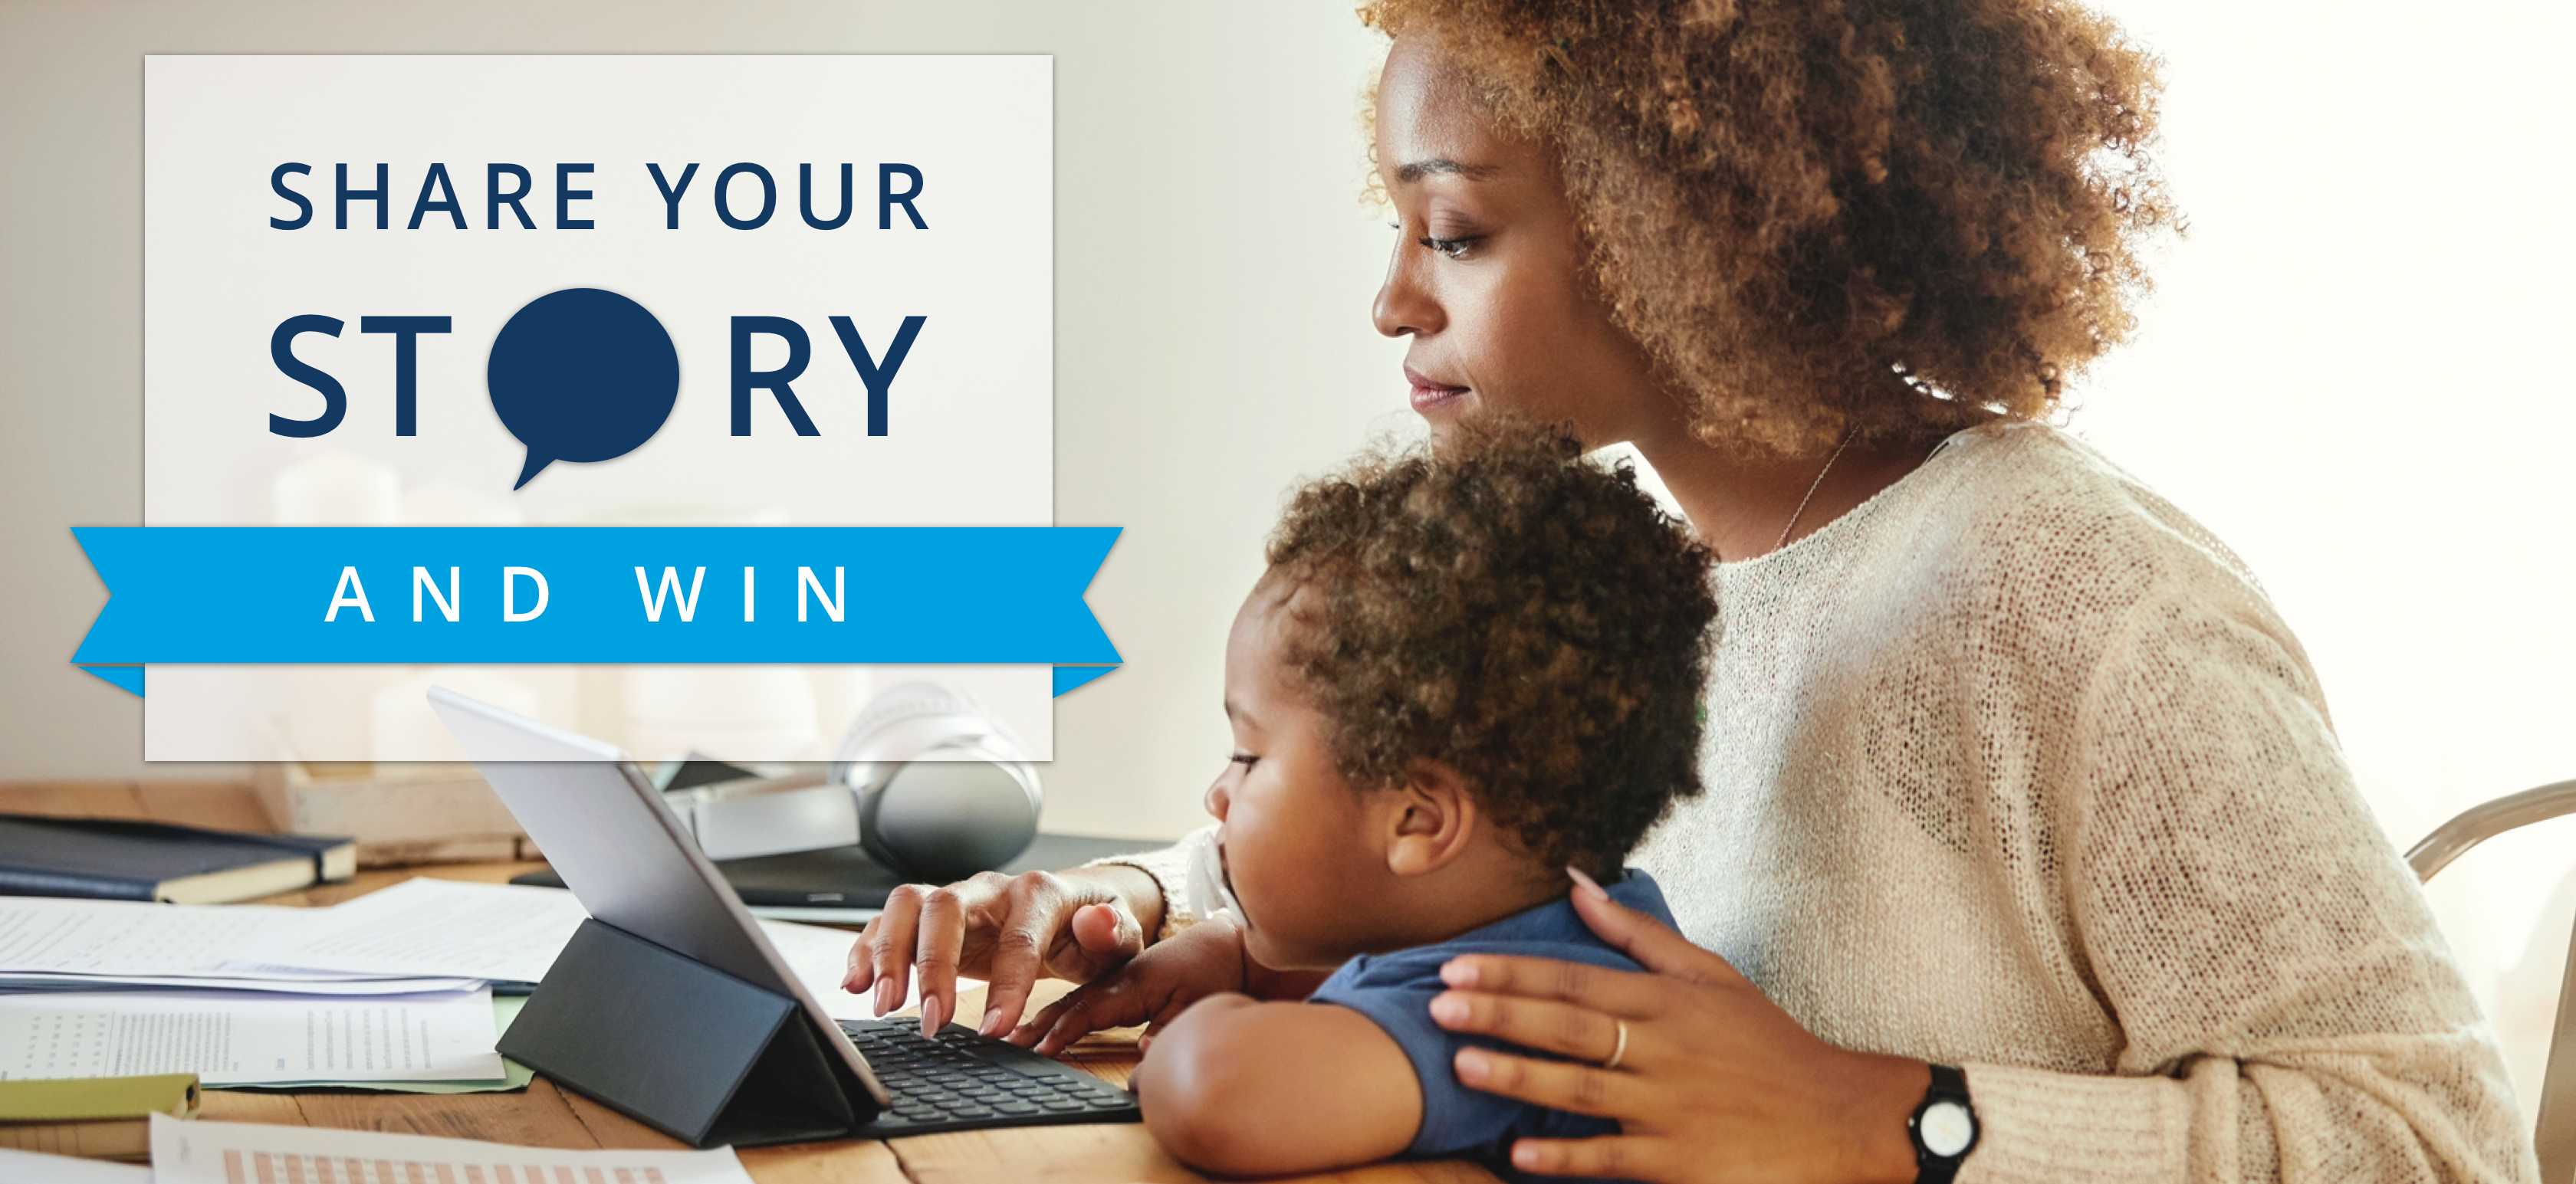 Share your story and win